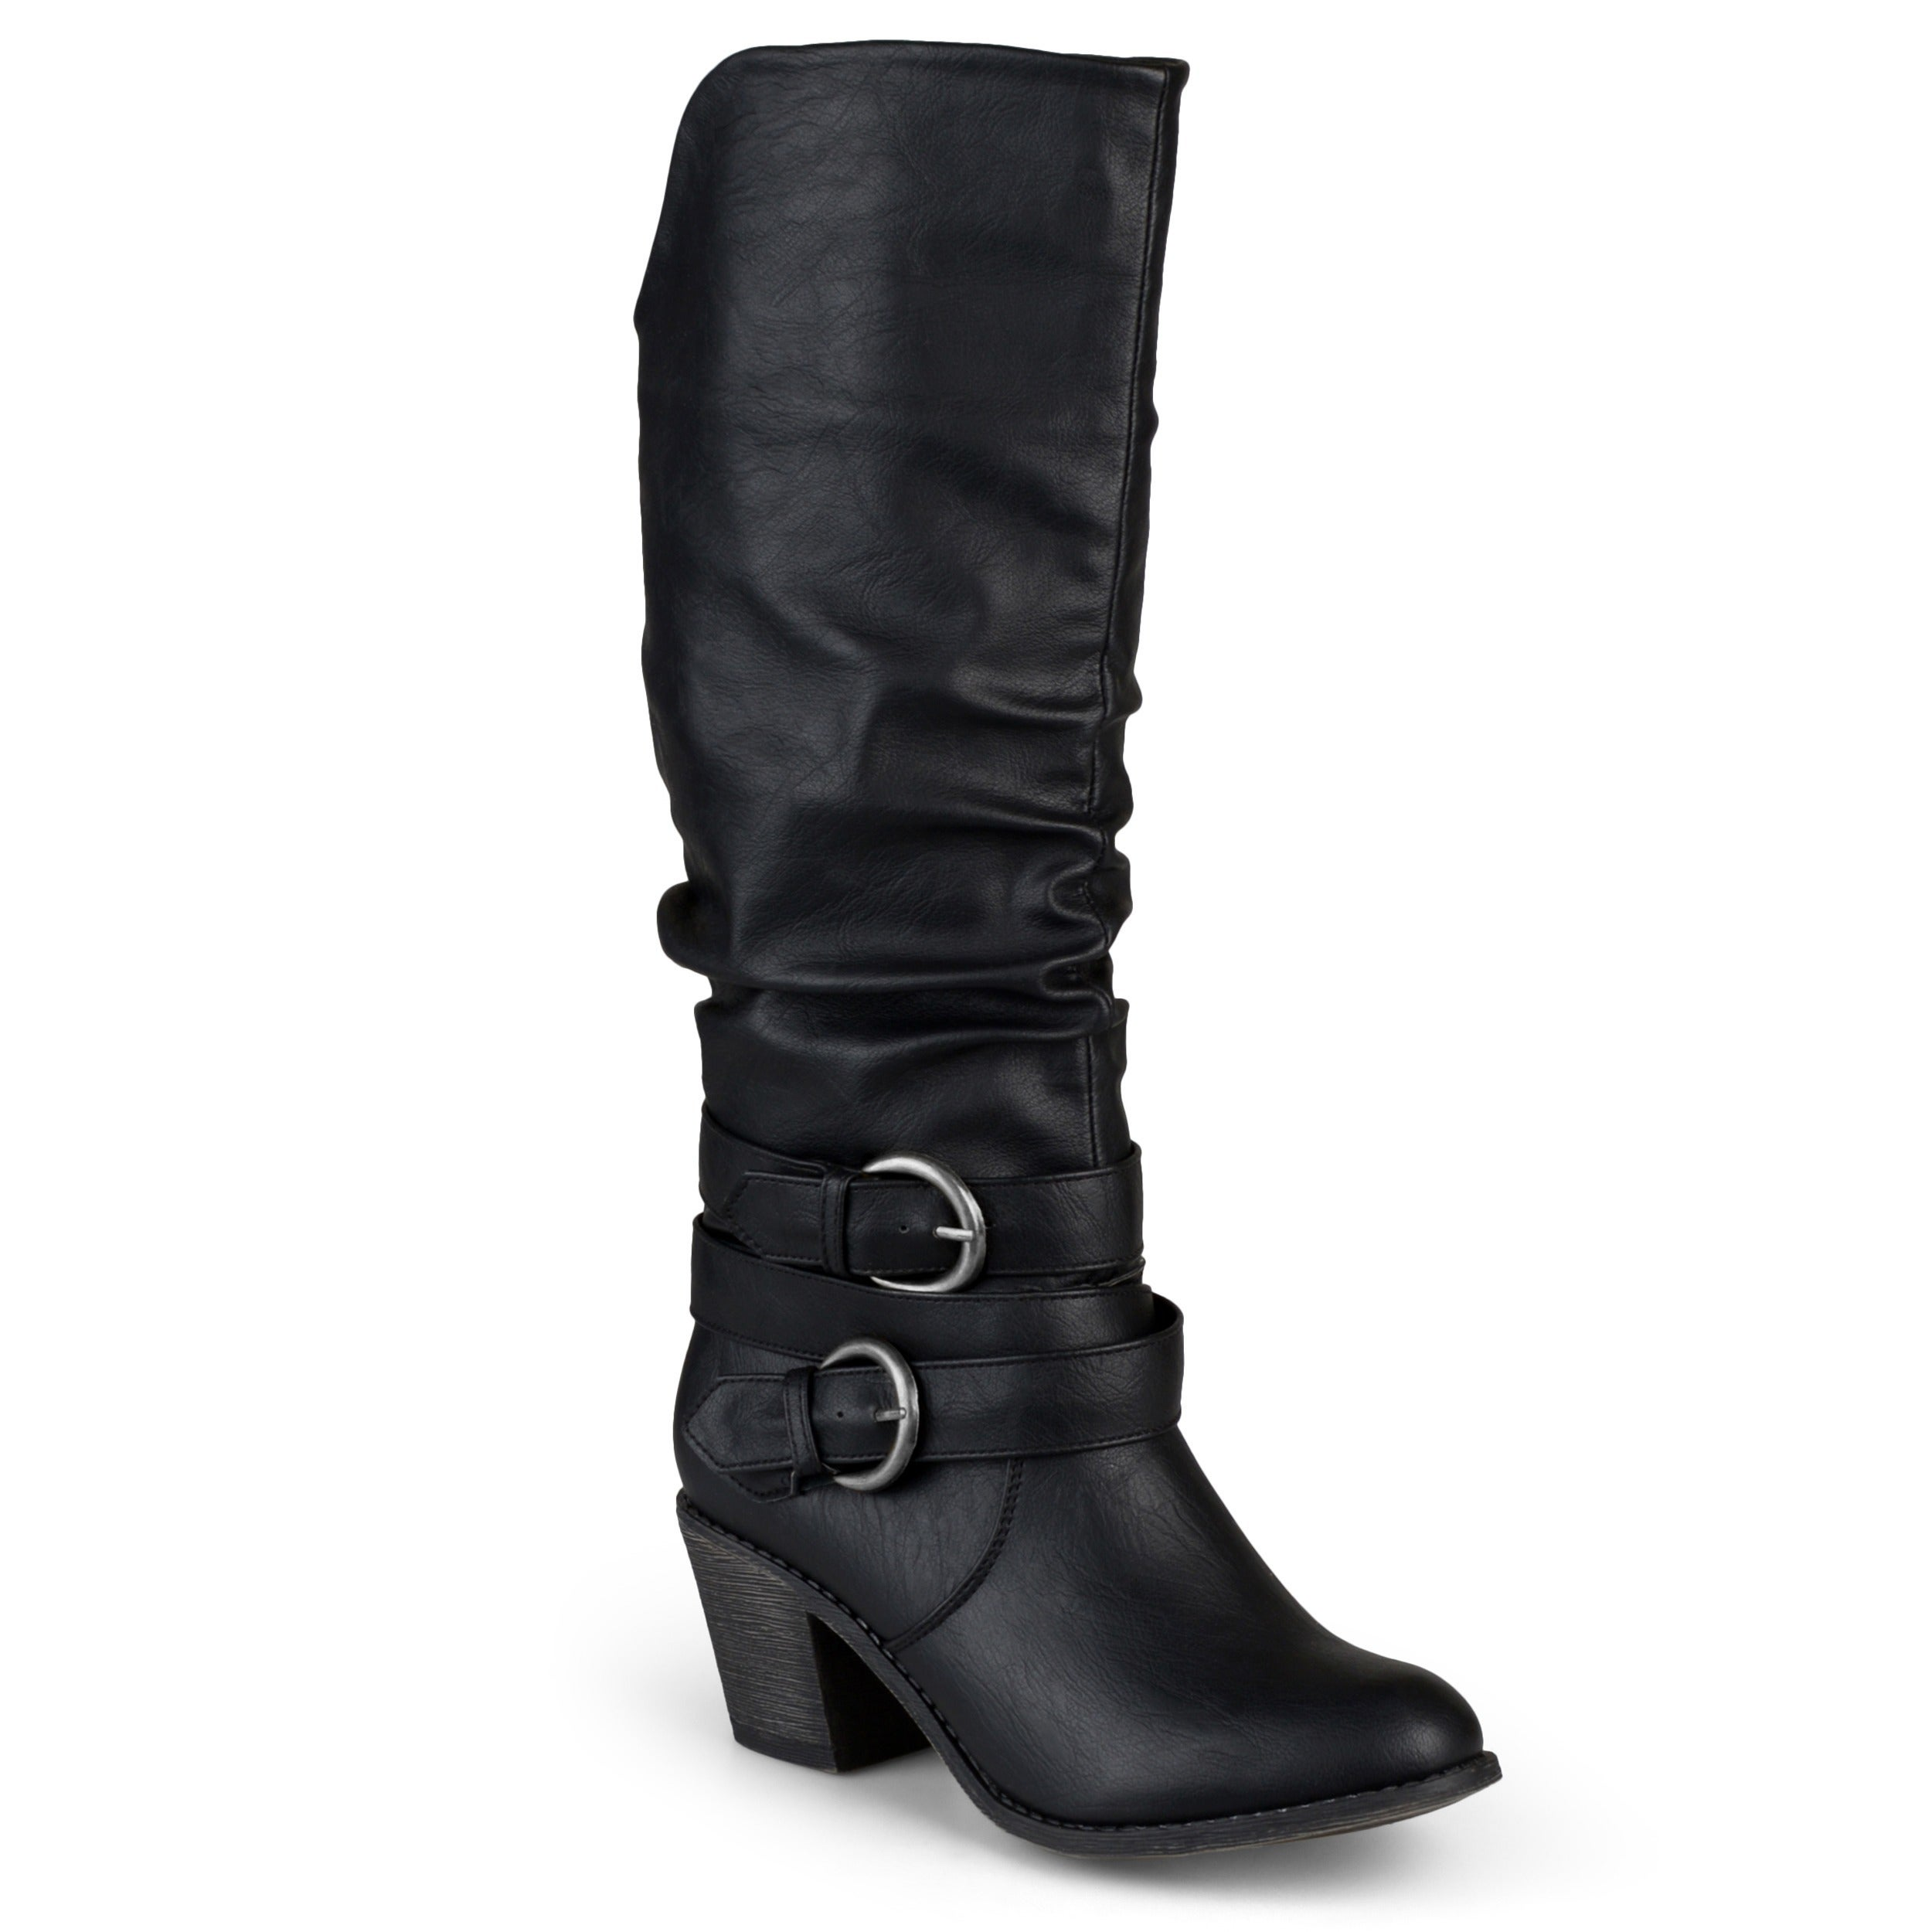 a3781784dc66 Shop Journee Collection Women s  Late  Buckle Slouch High Heel Boots - On  Sale - Free Shipping Today - Overstock - 10337951